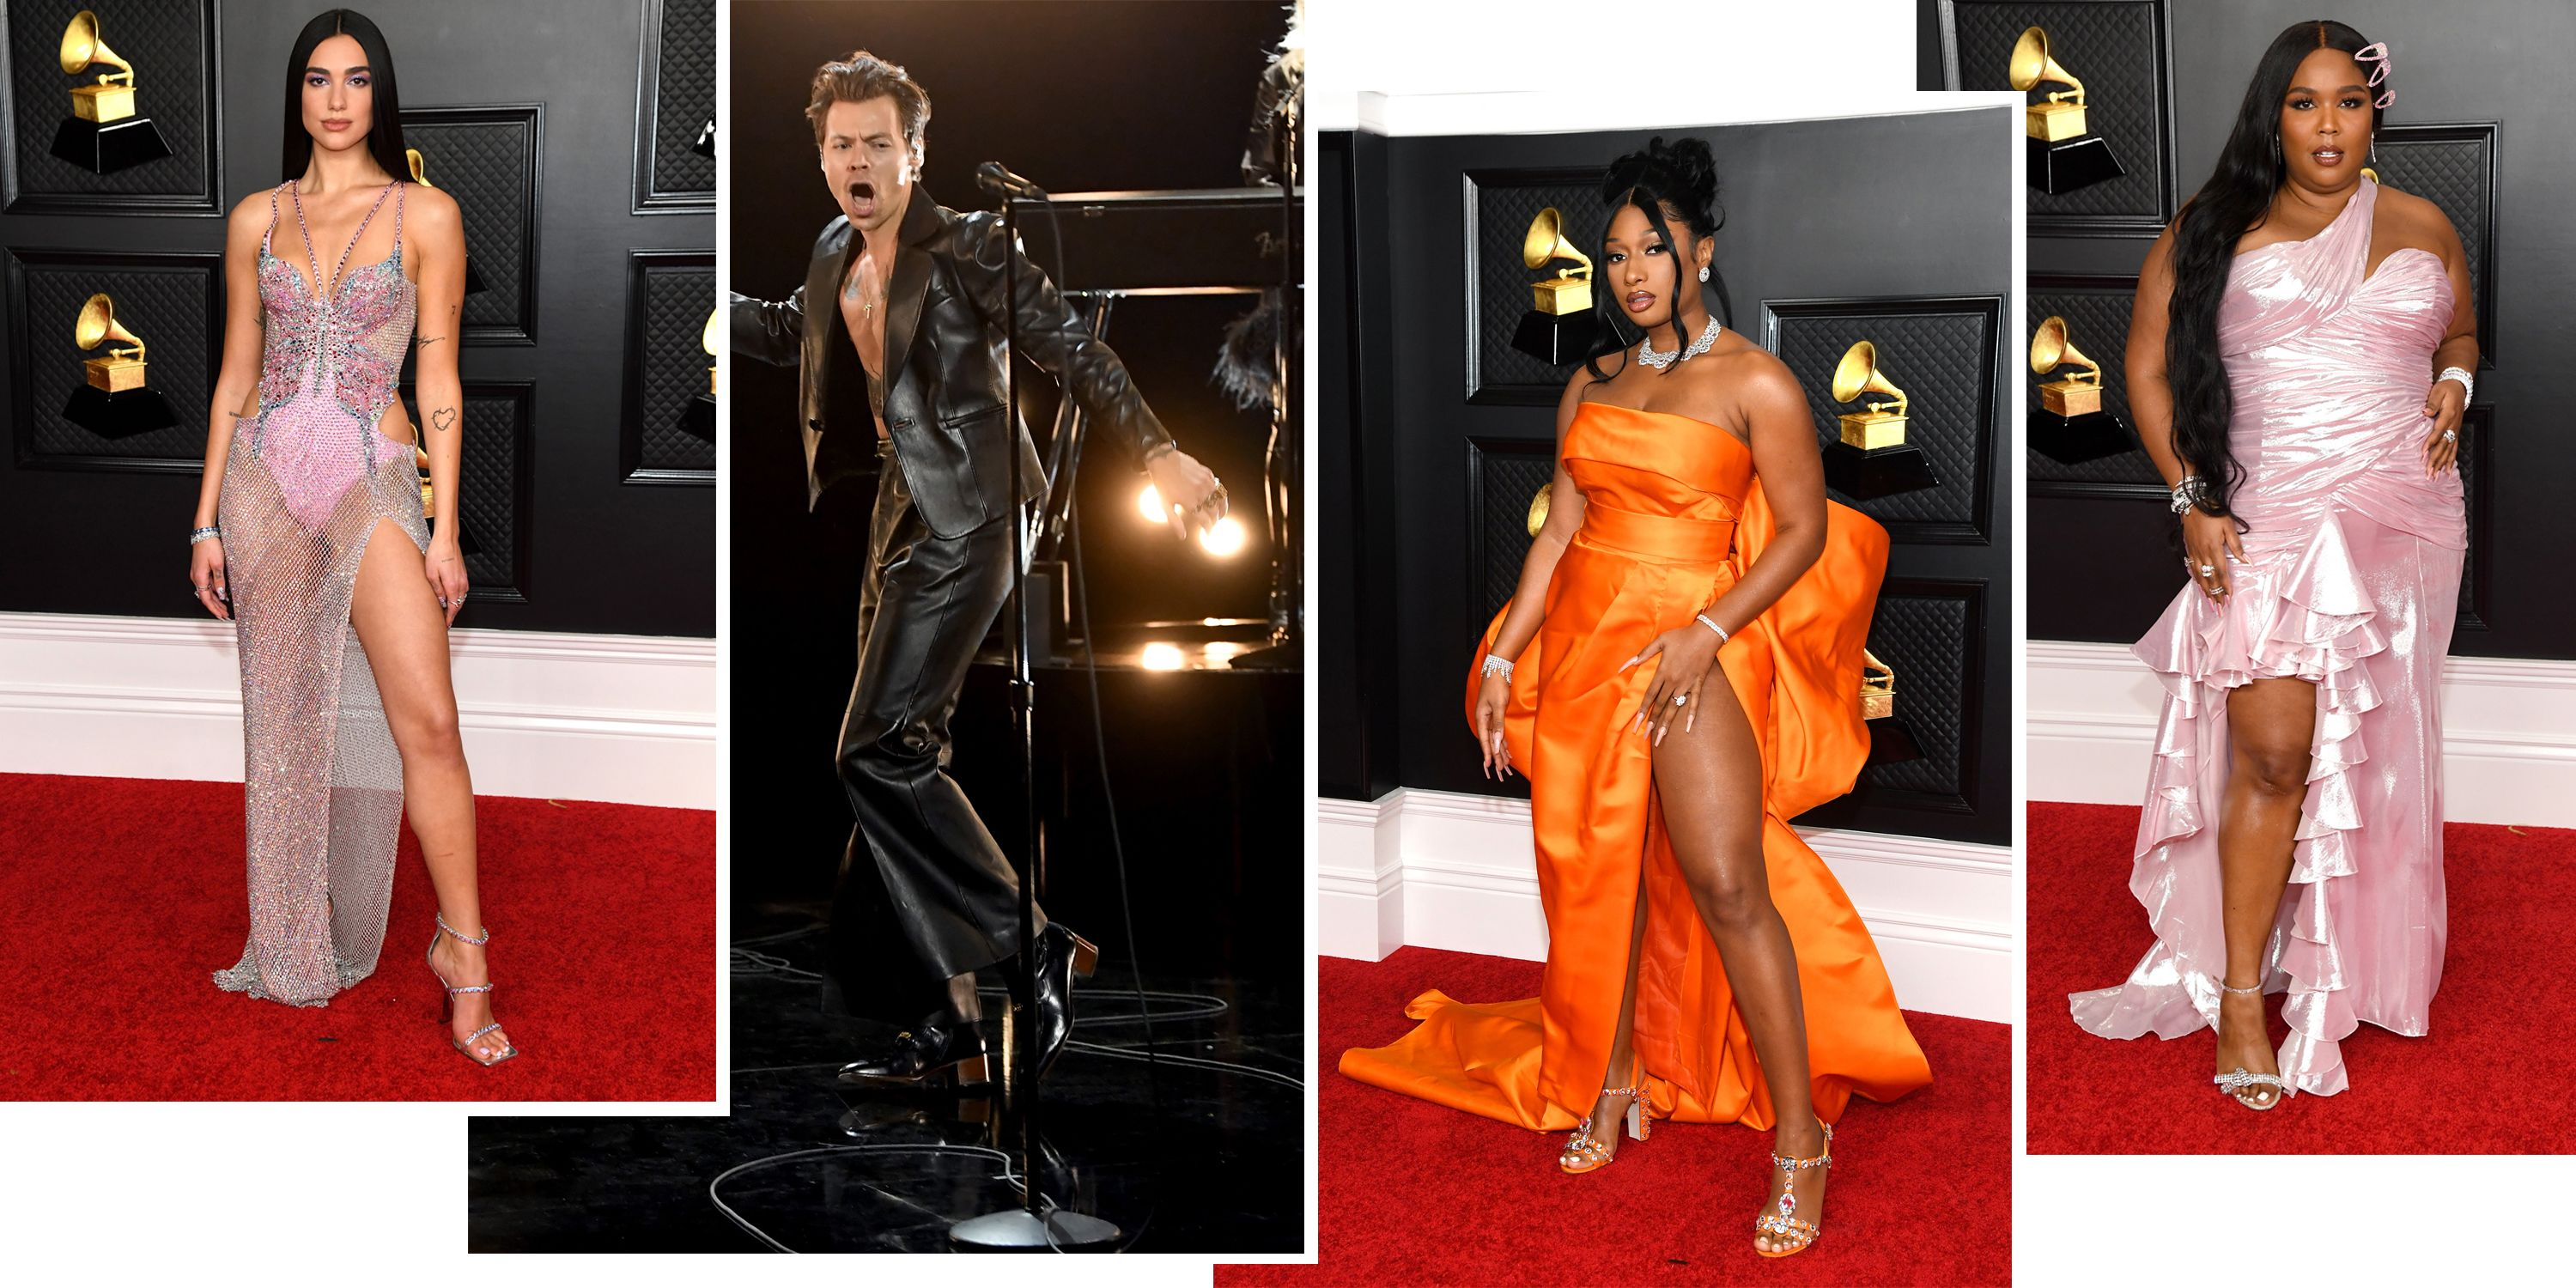 The 10 Best Dressed at the 63rd Annual Grammy Awards